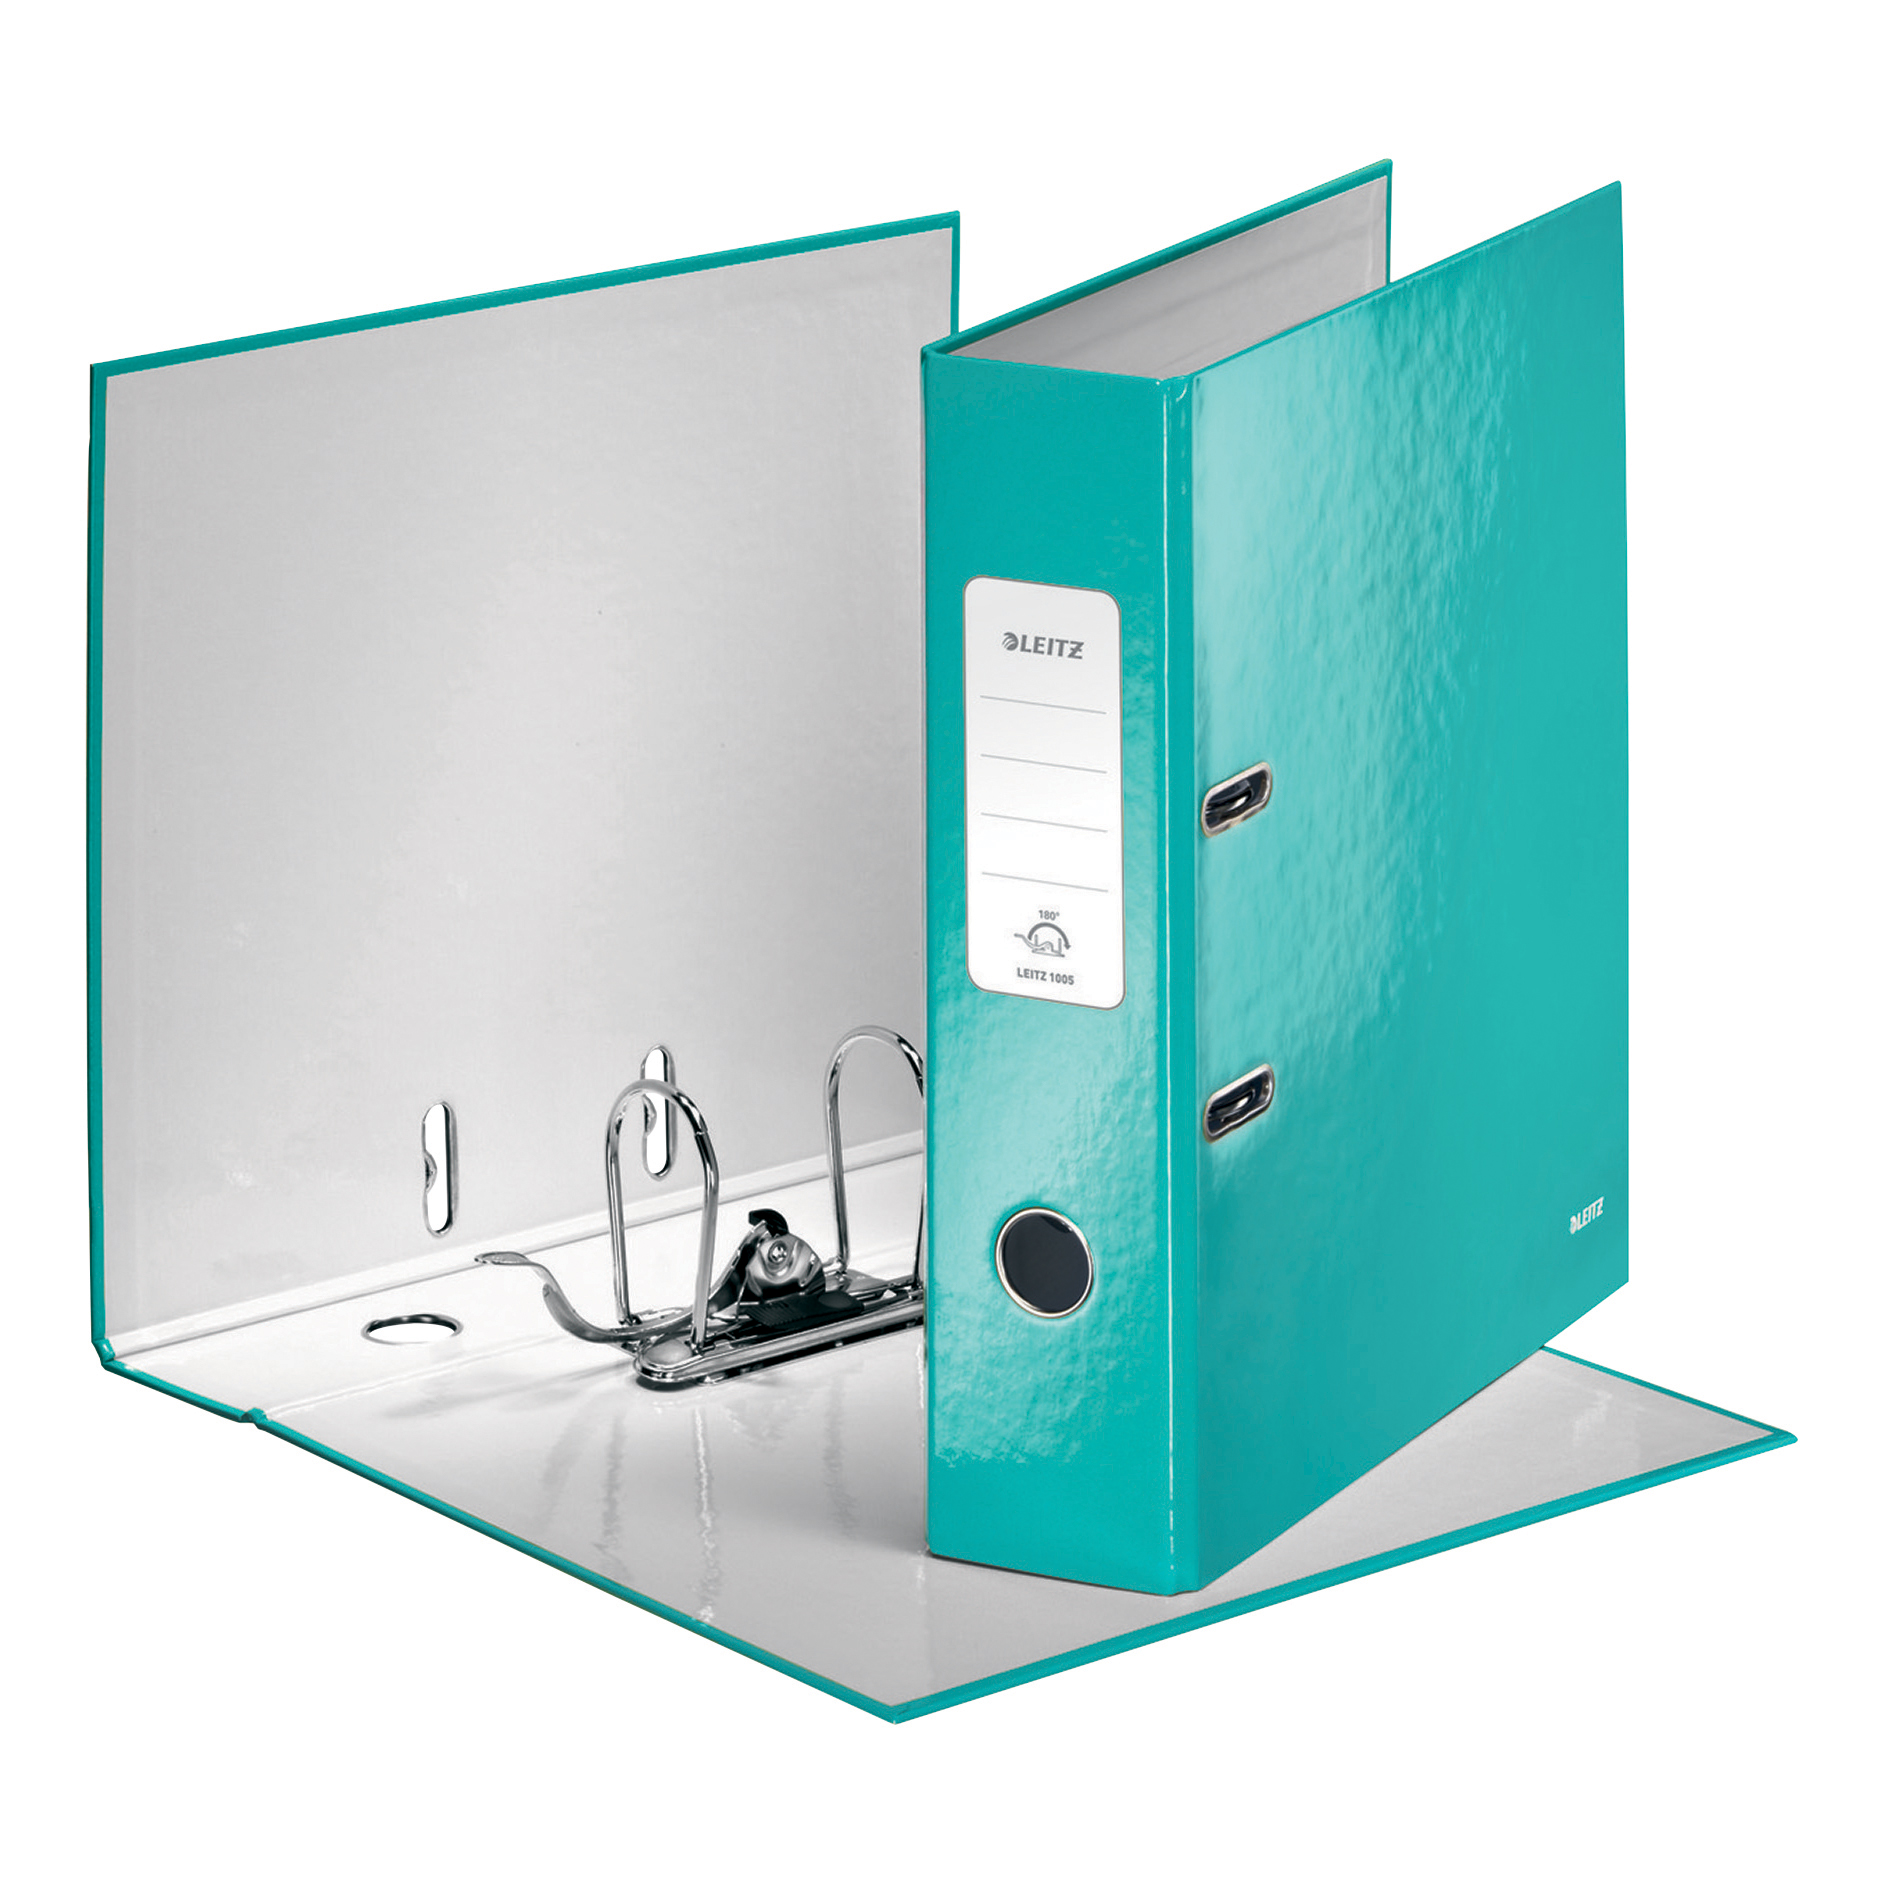 Leitz WOW Lever Arch File 80mm Spine for 600shts A4 Ice Blue Ref 10050051 [Pack 10][REDEMPTION] Oct-Dec19